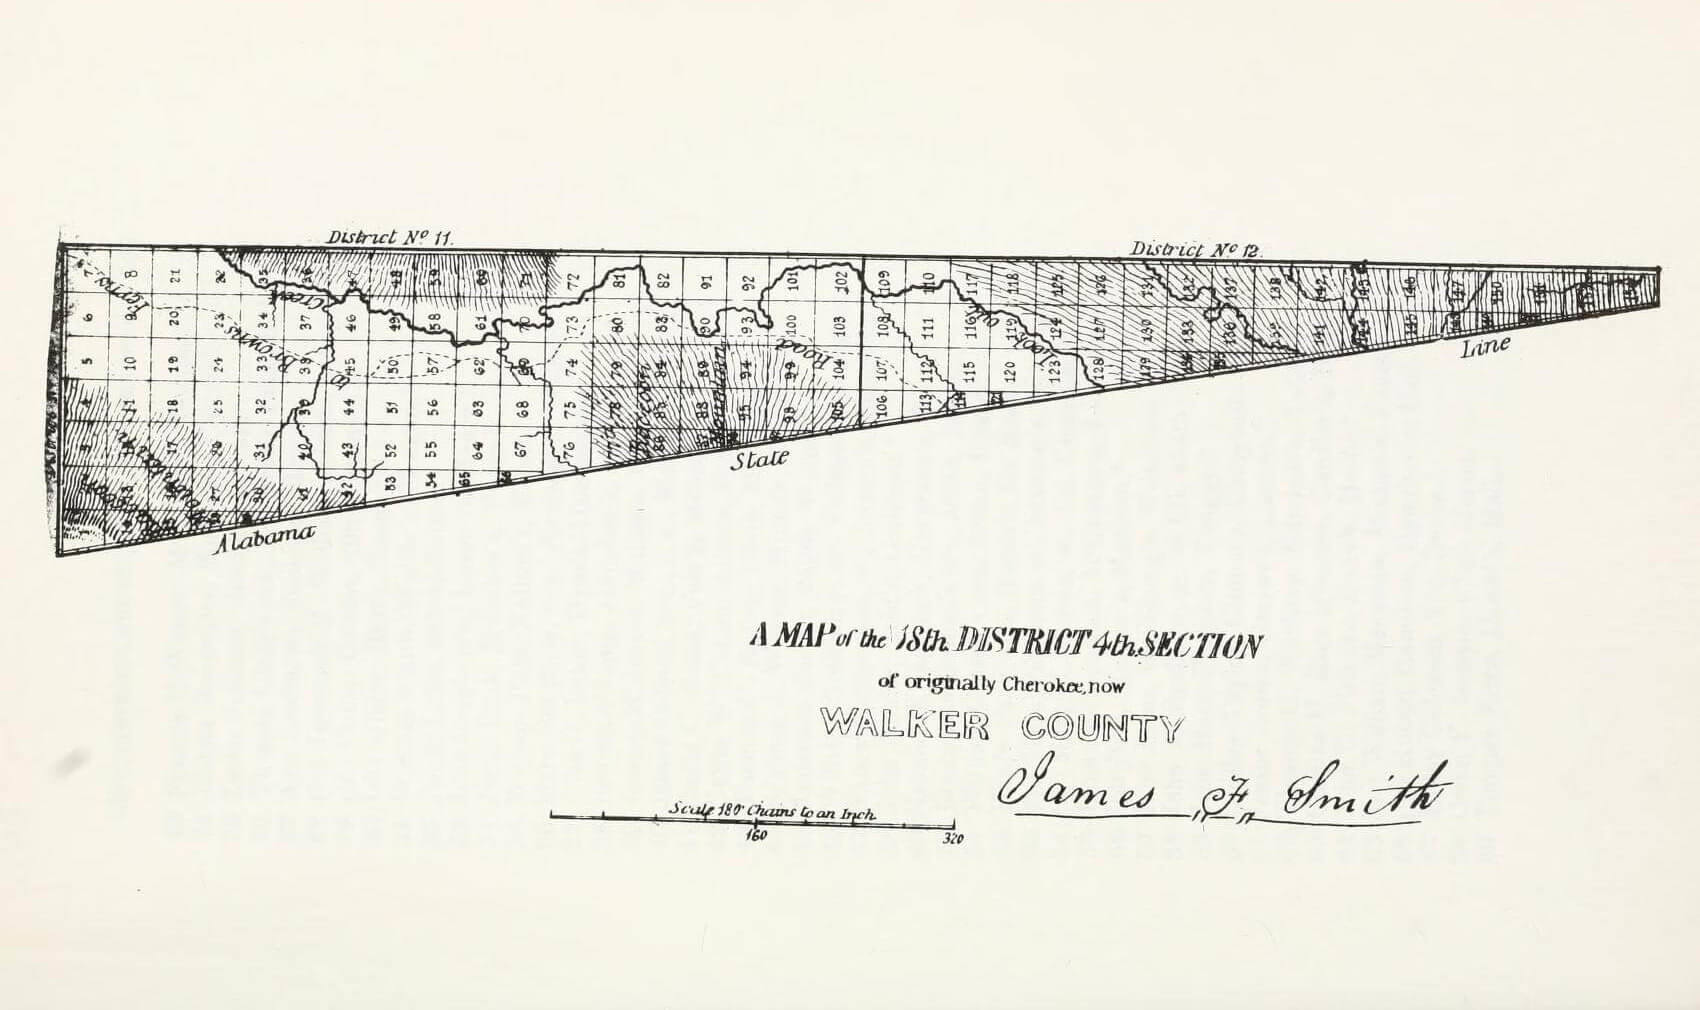 A map of the 18th District 4th Section of originally Cherokee, now Walker County